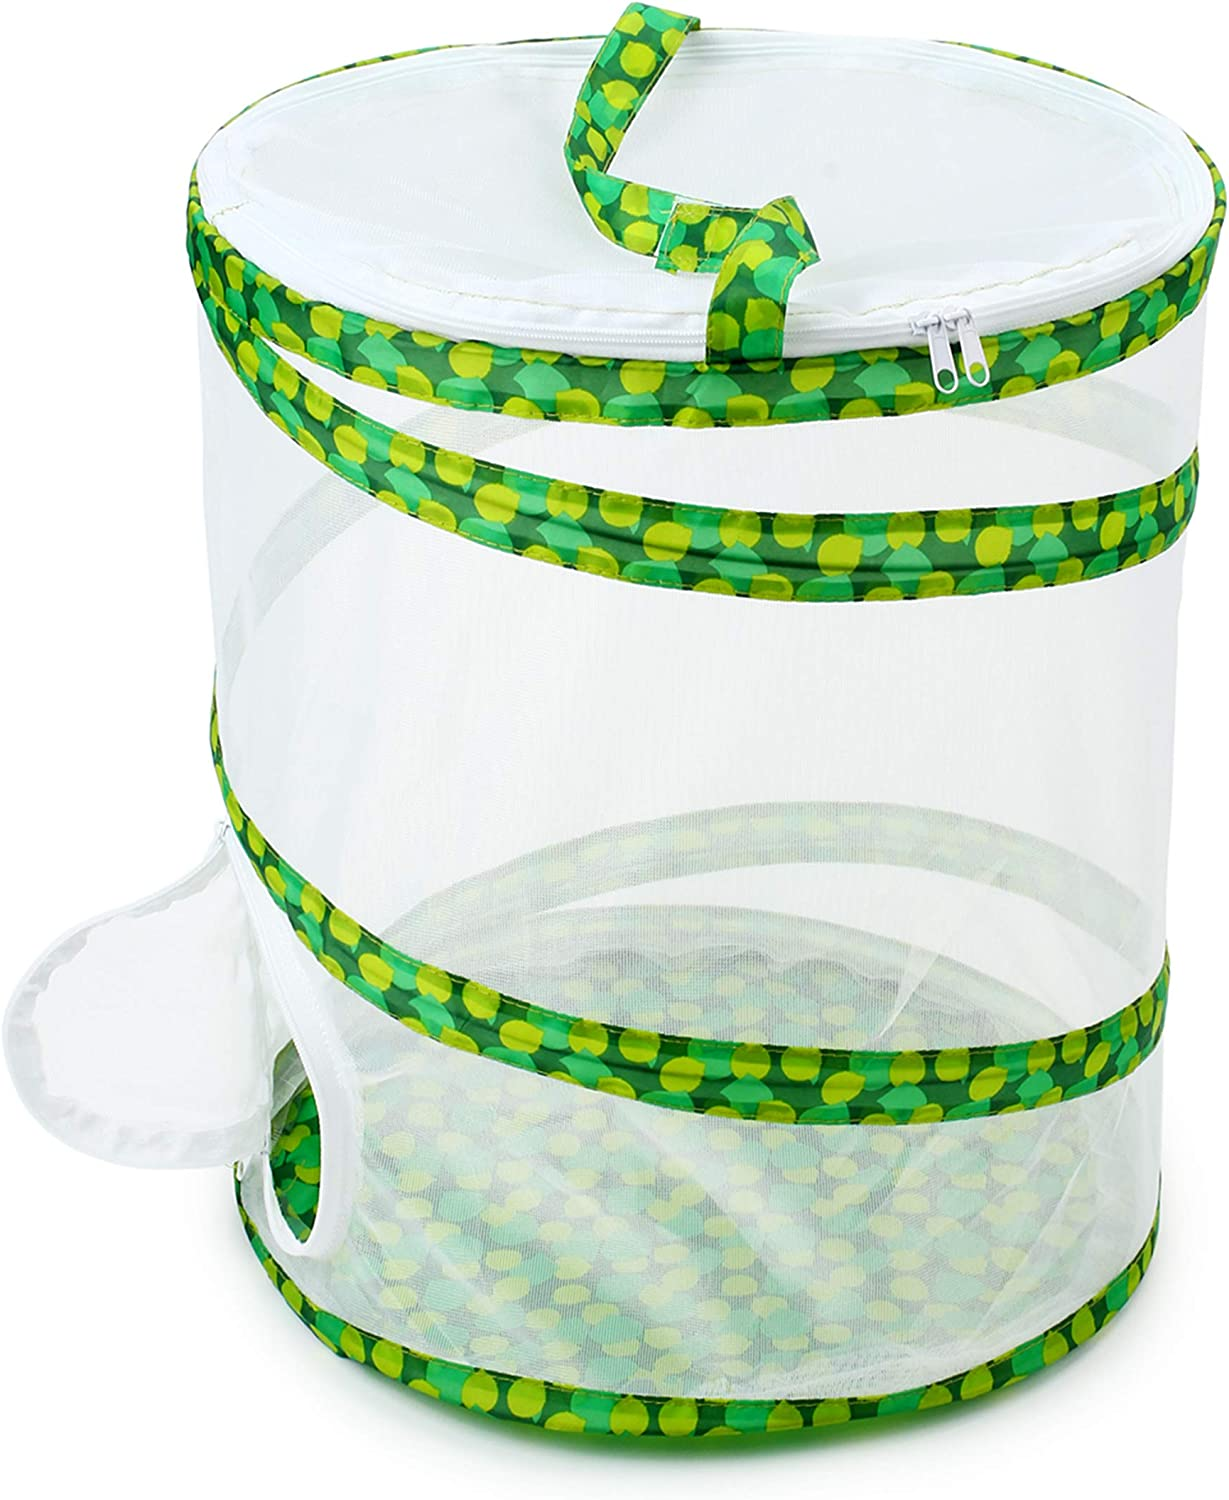 """RESTCLOUD Insect and Butterfly Habitat Cage Terrarium Pop-up 12"""" x 14"""" Tall"""